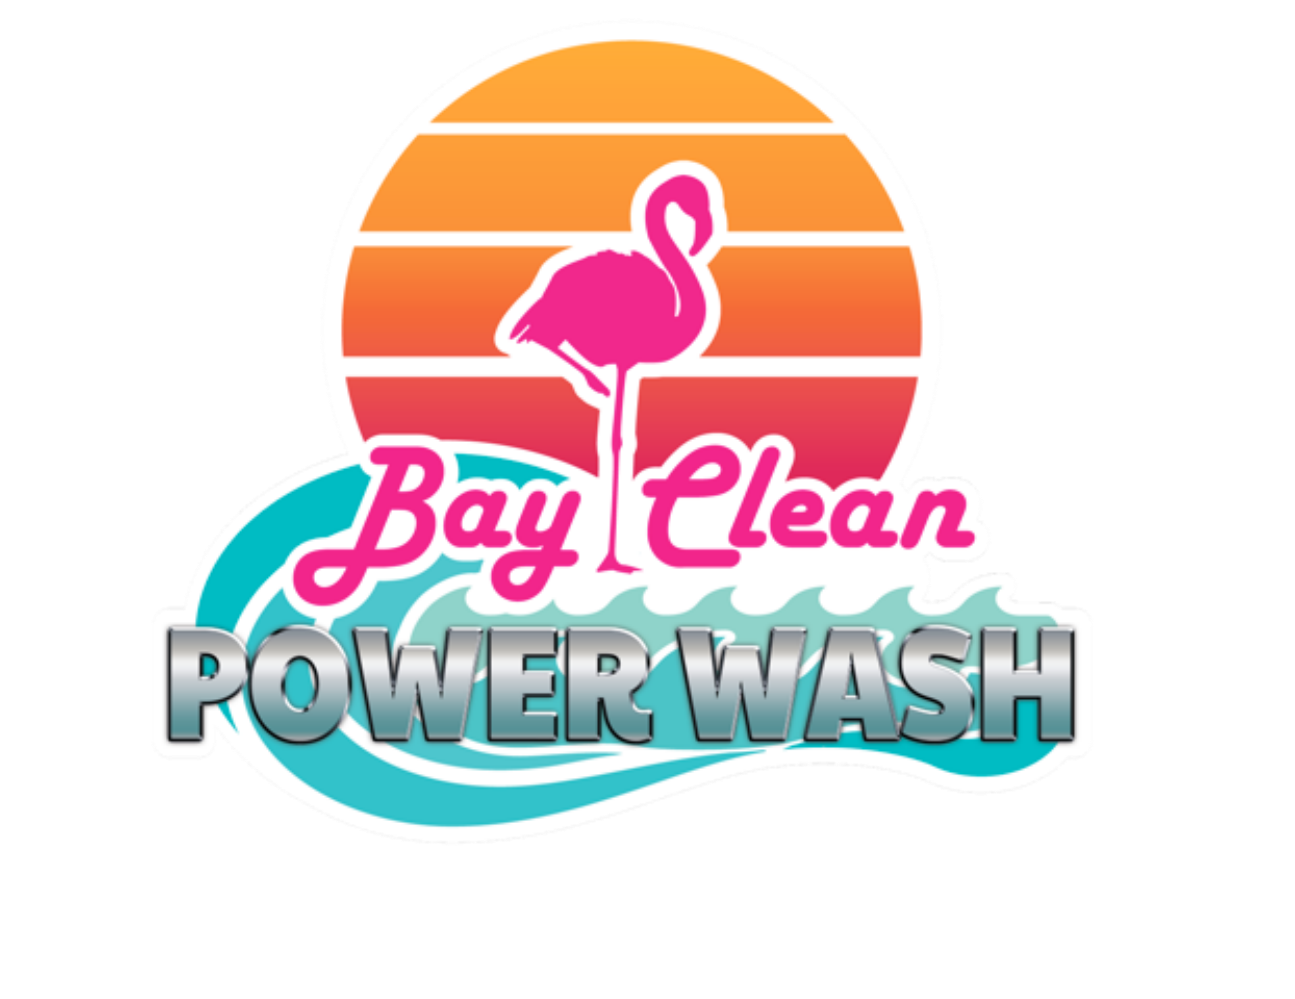 BAYCLEANPOWERWASH.COM